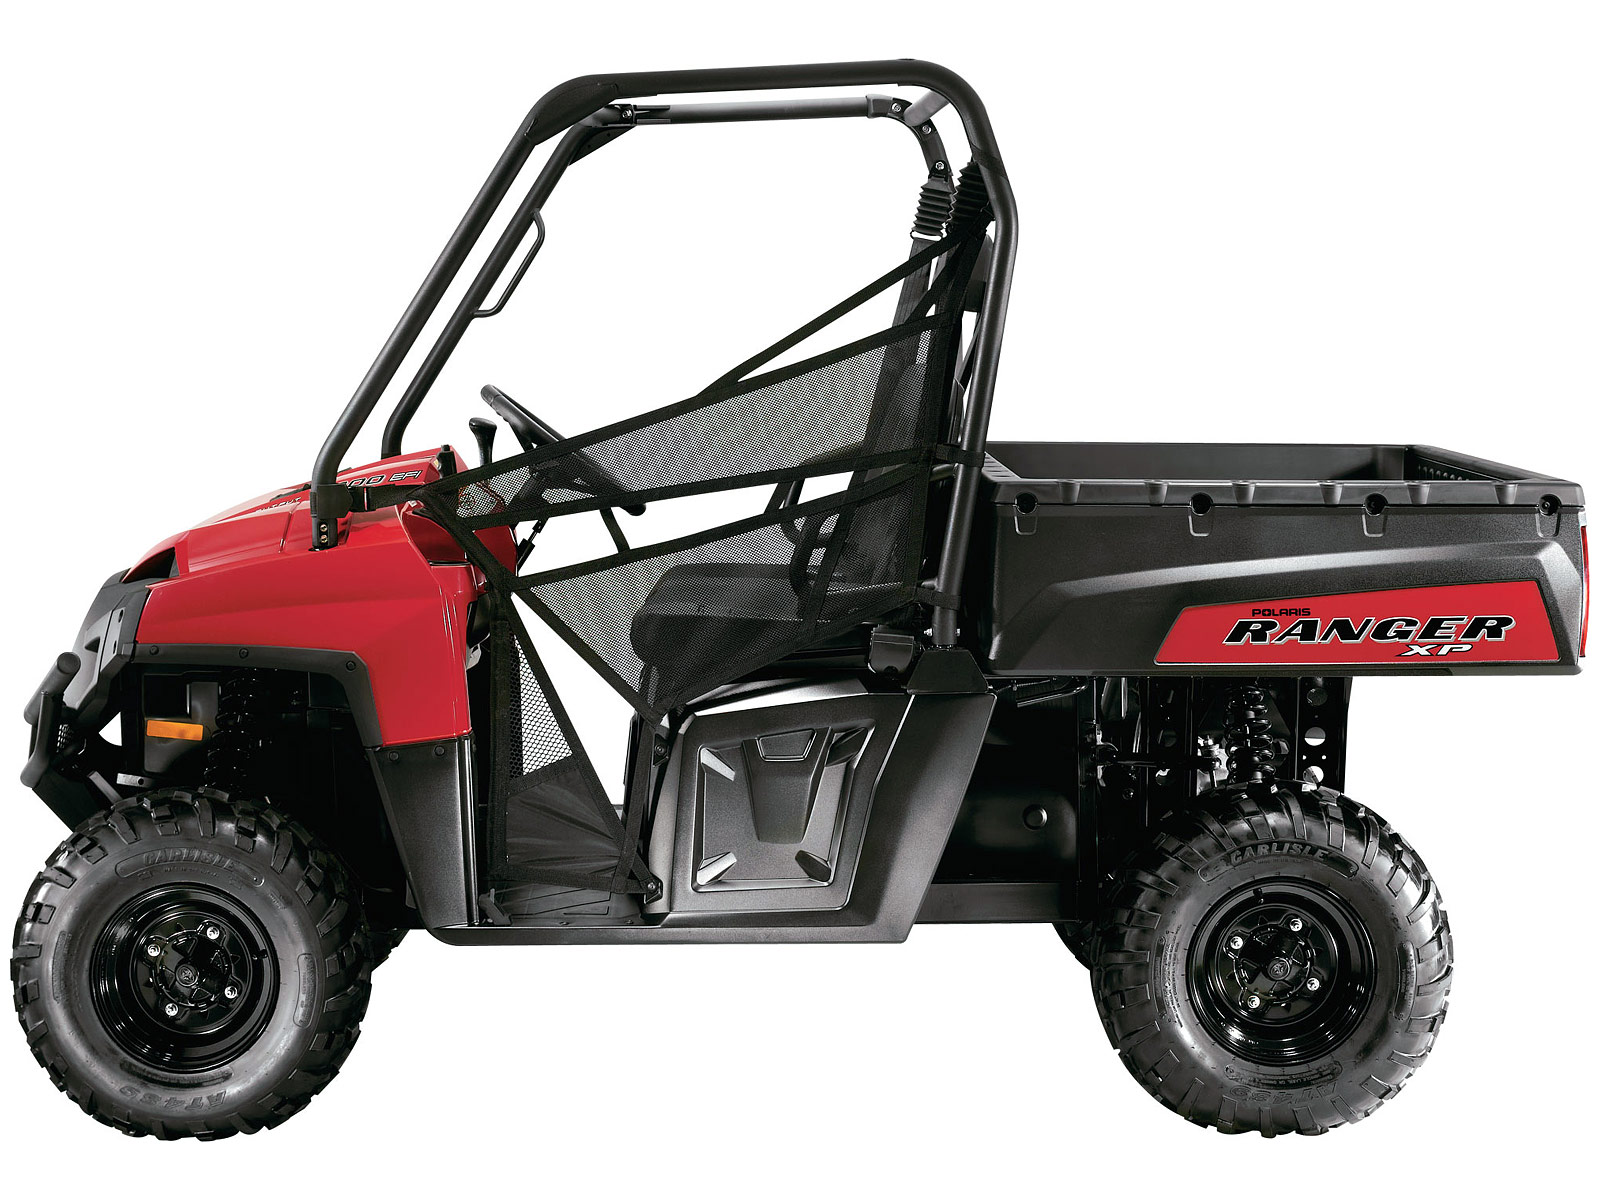 2012 polaris ranger xp800 insurance information. Black Bedroom Furniture Sets. Home Design Ideas